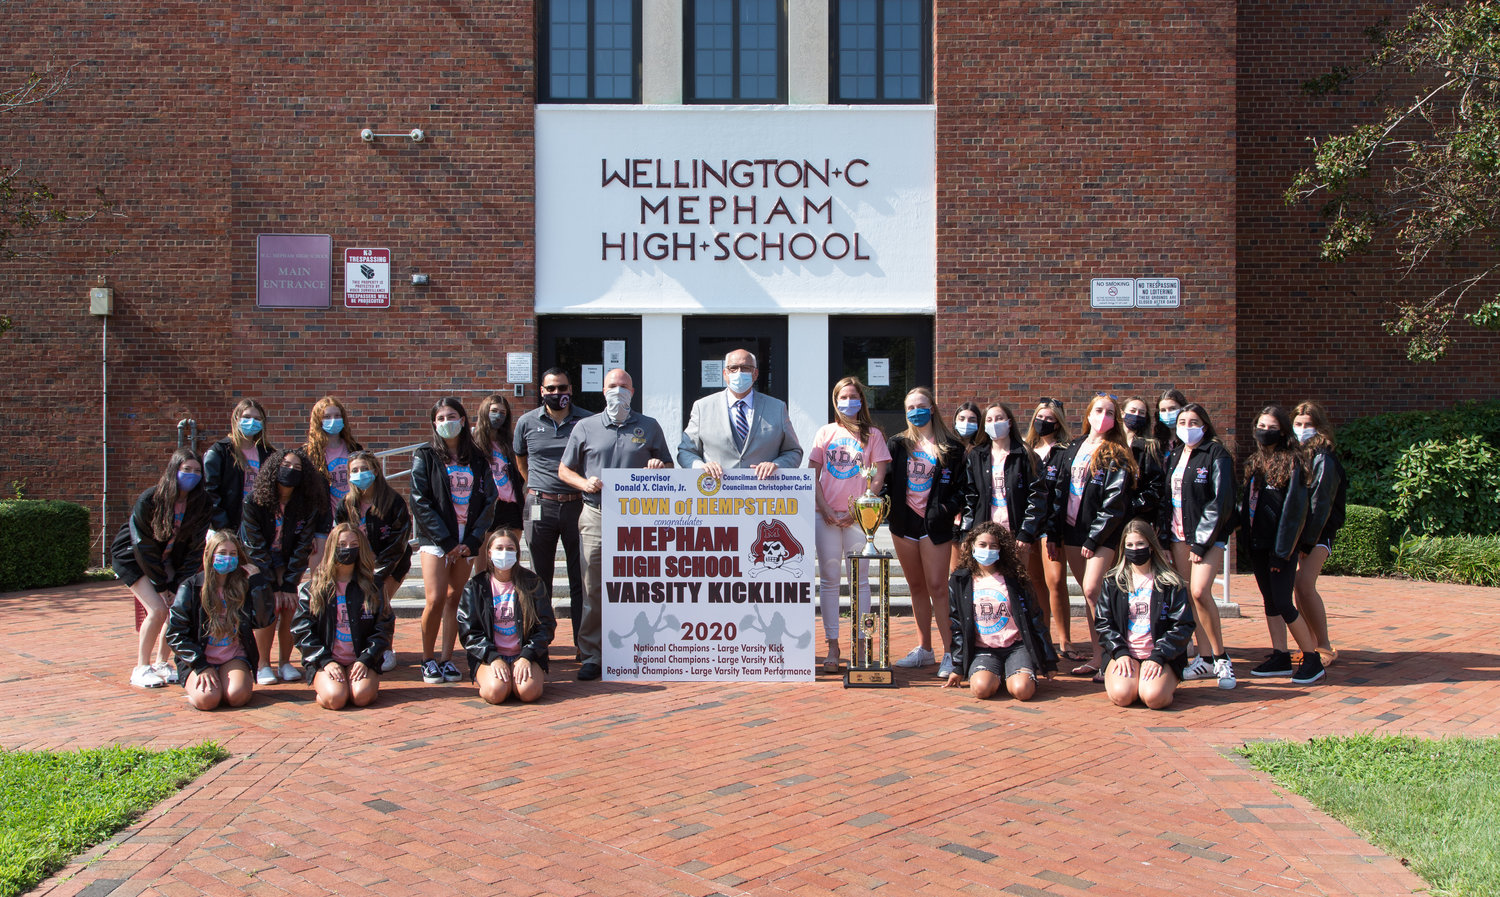 The Town of Hempstead presented Mepham High School's varsity kickline team with a national championship sign on Aug. 17.